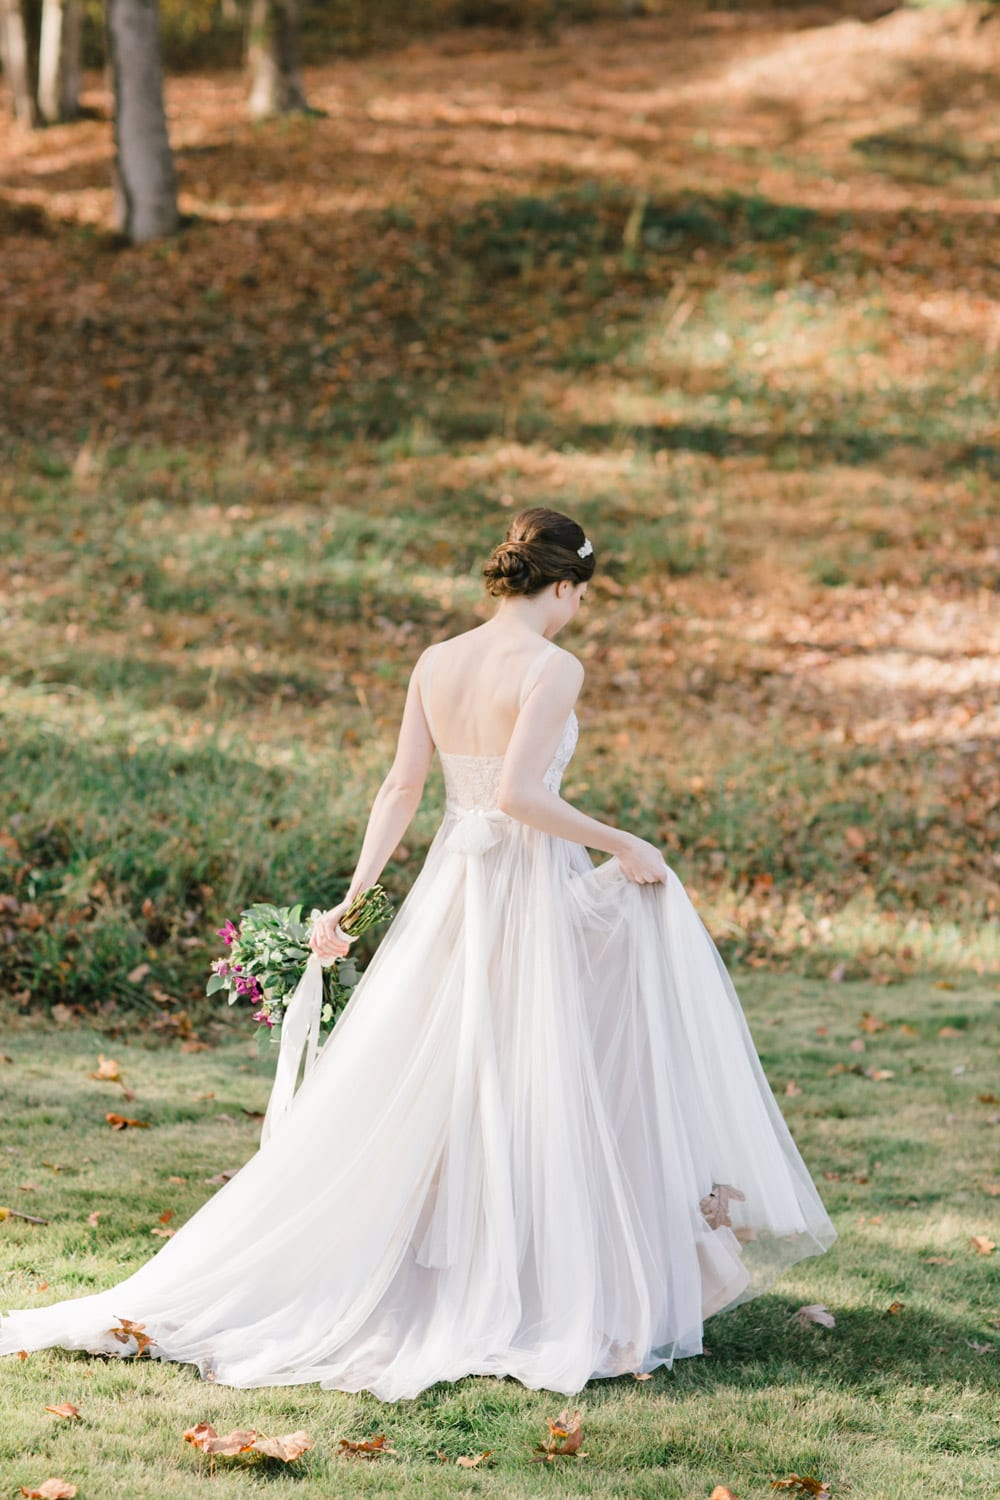 Bride walks outside with flowers